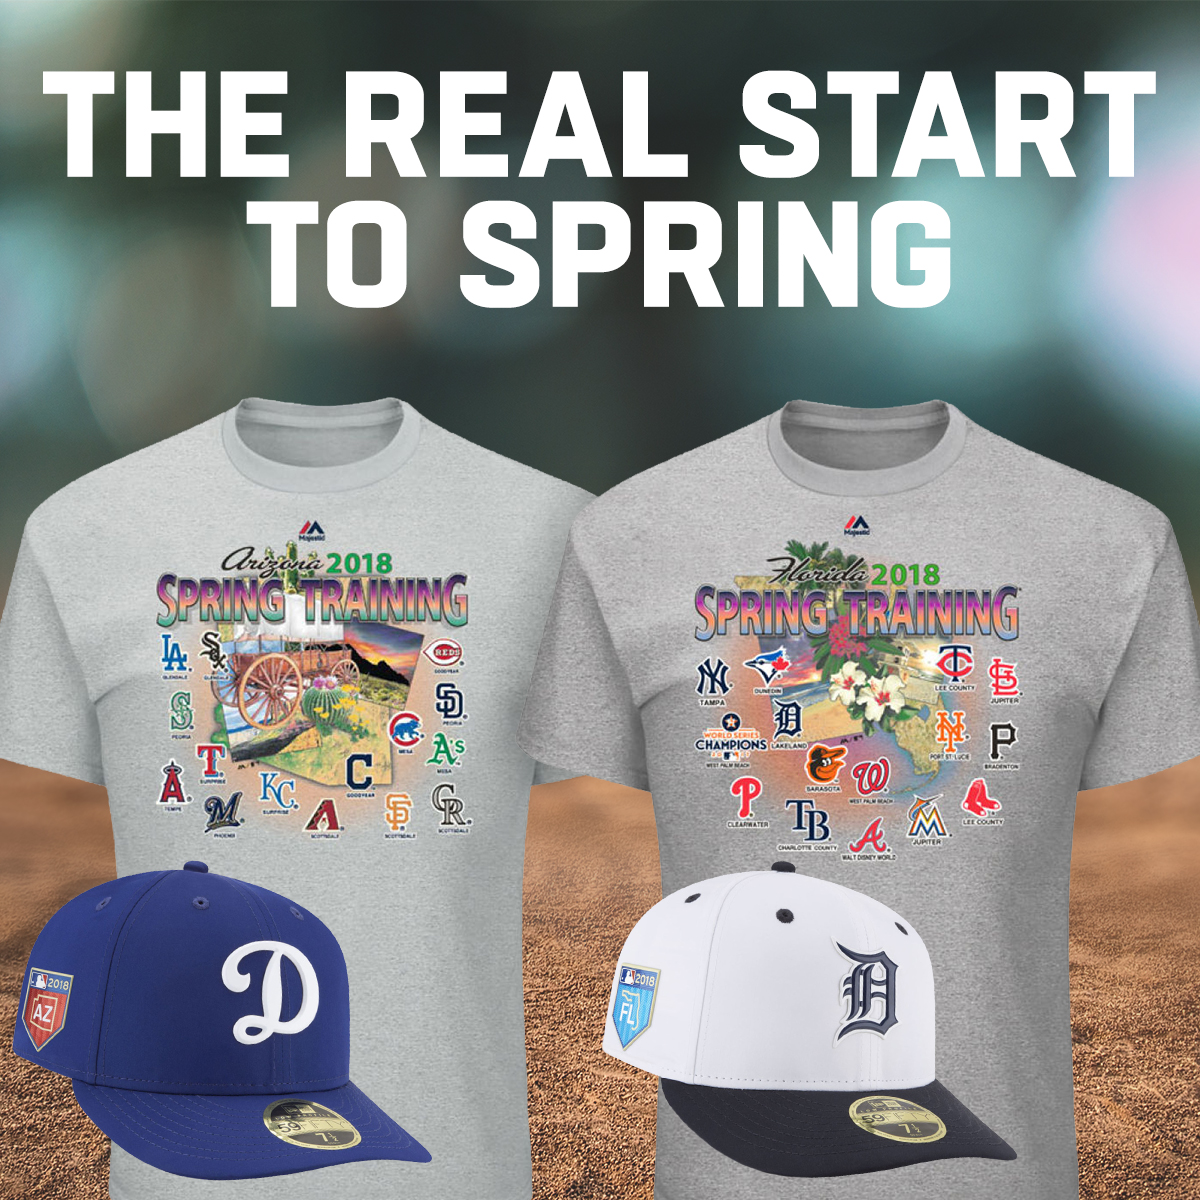 41ad322168c07a Help your team reach their peak performance before the season starts by  supporting them during spring training. Shop here now for some brand new  2018 ...